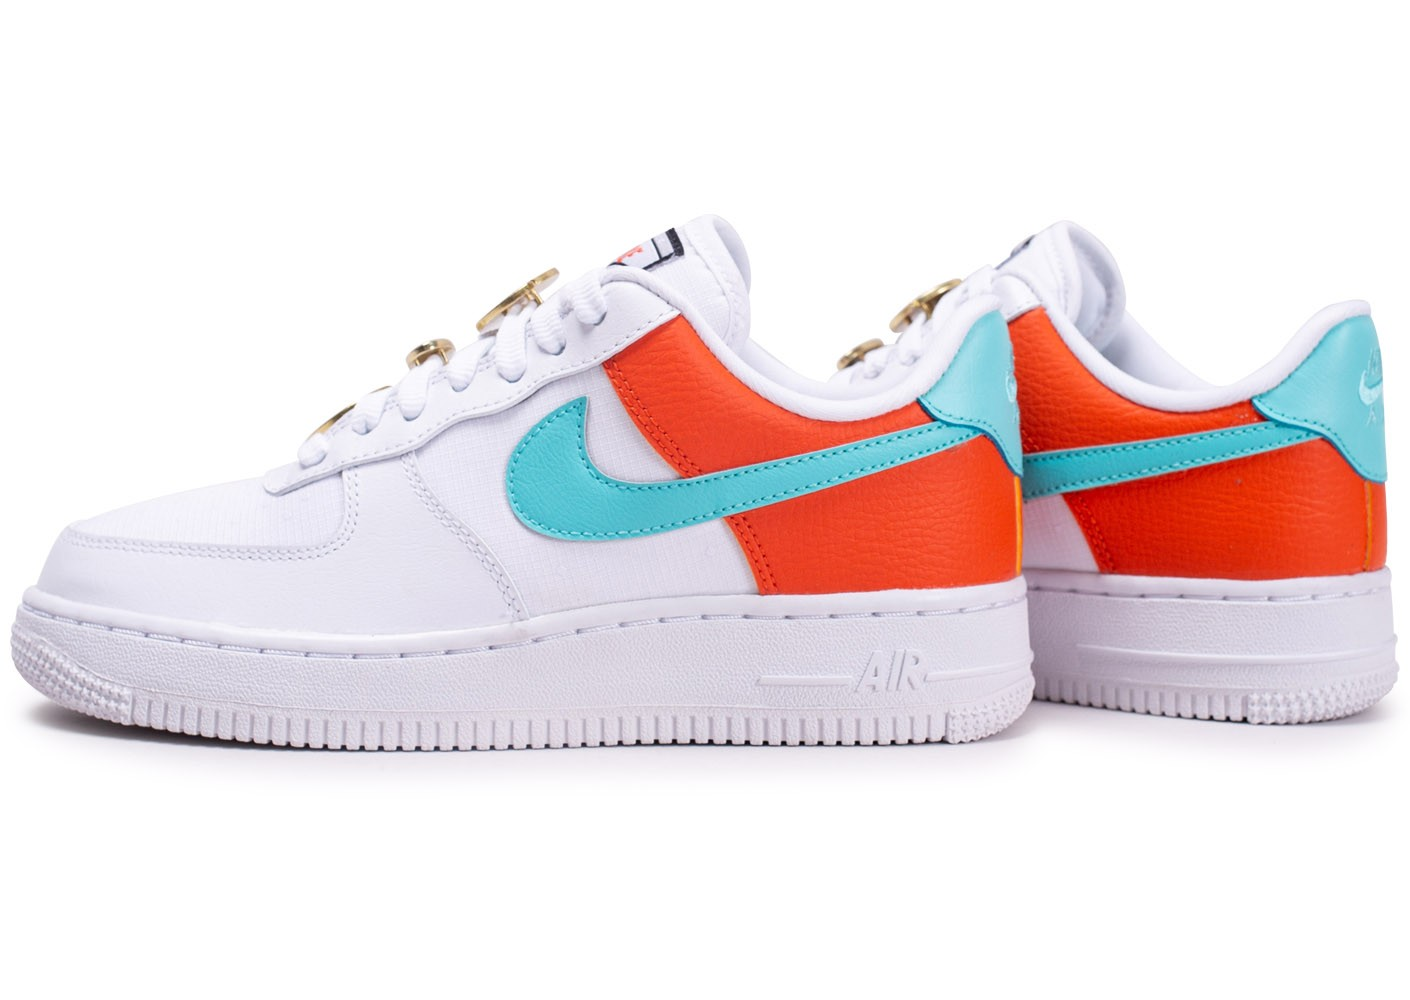 best value sneakers hot product Nike Air Force 1 Blanche, bleu et marron - Chaussures Baskets ...